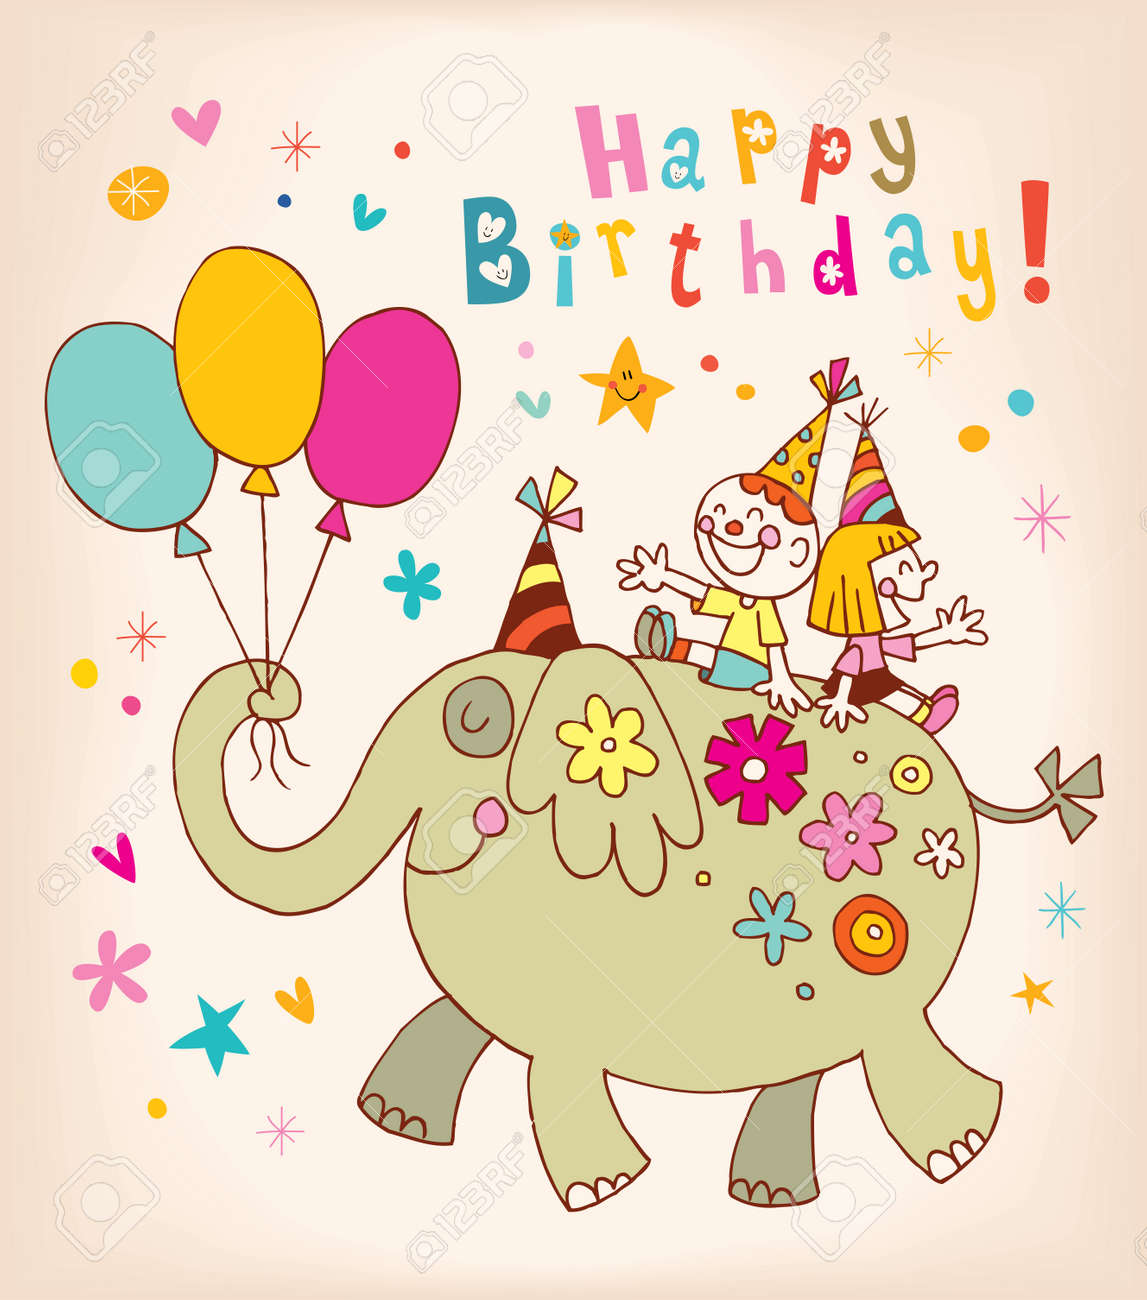 Happy birthday kids greeting card royalty free cliparts vectors happy birthday kids greeting card stock vector 56575690 bookmarktalkfo Images